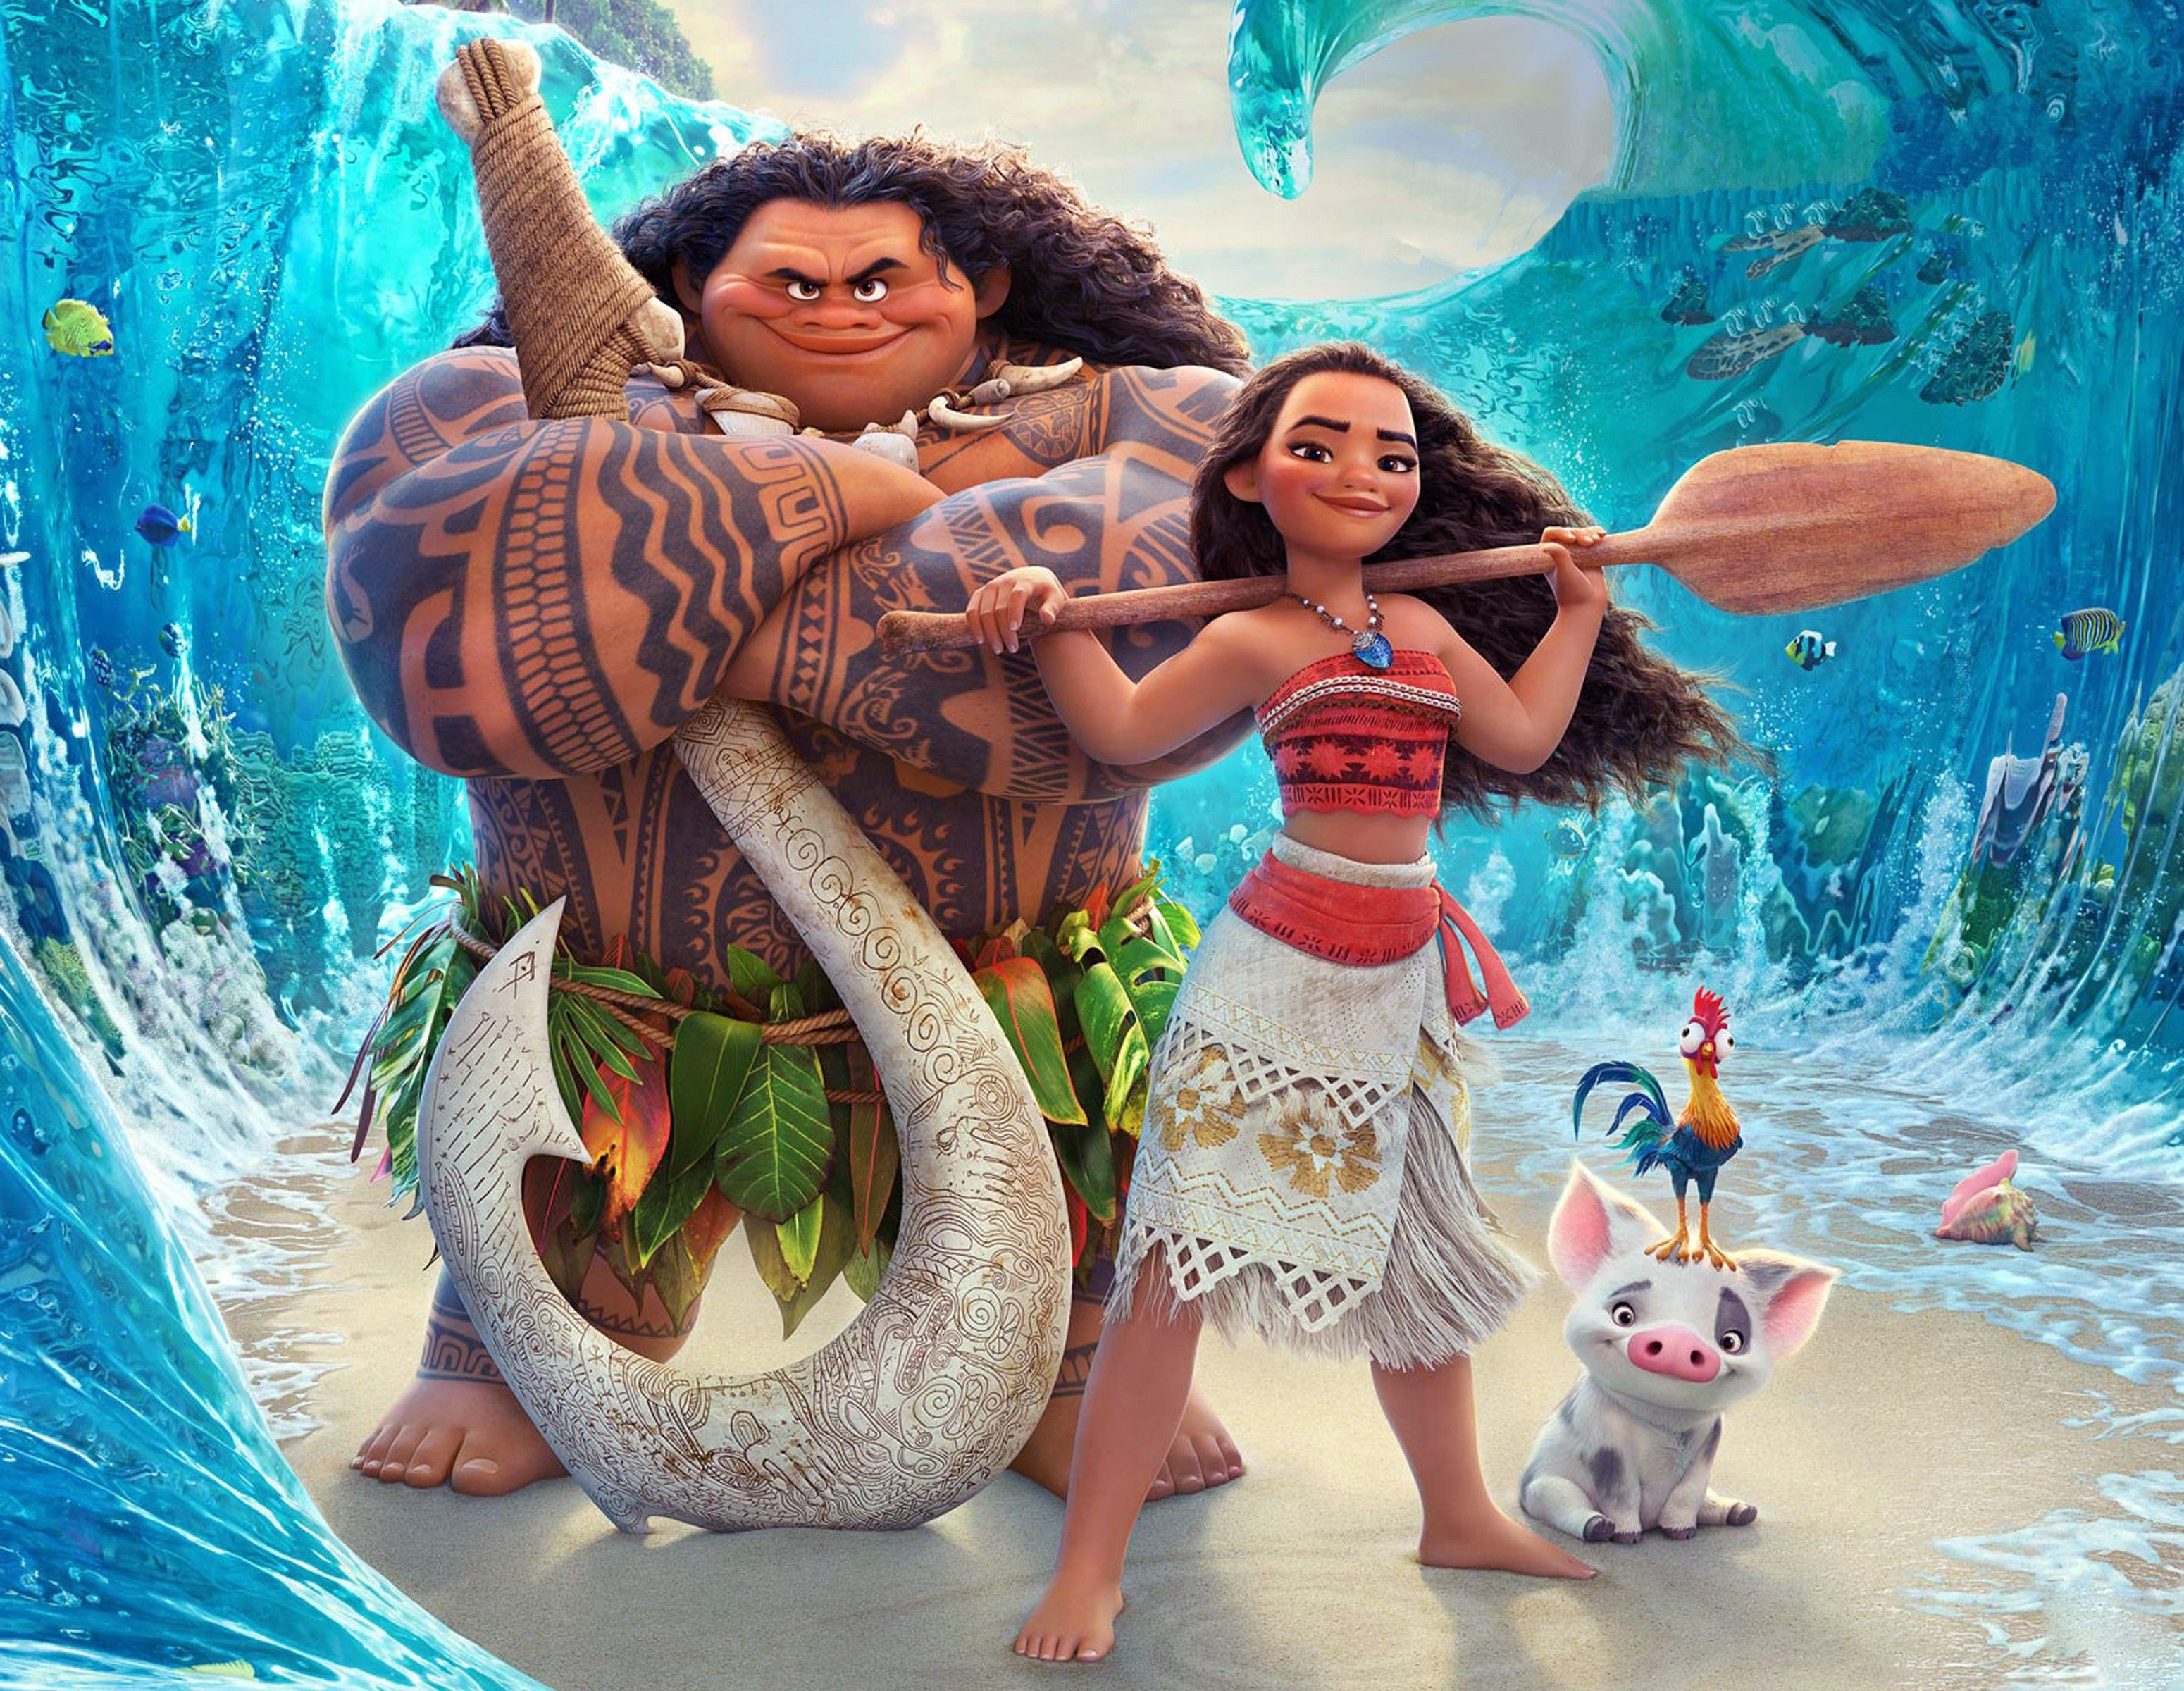 Moana!!! I love Moana and I love all the characters like Moana ...